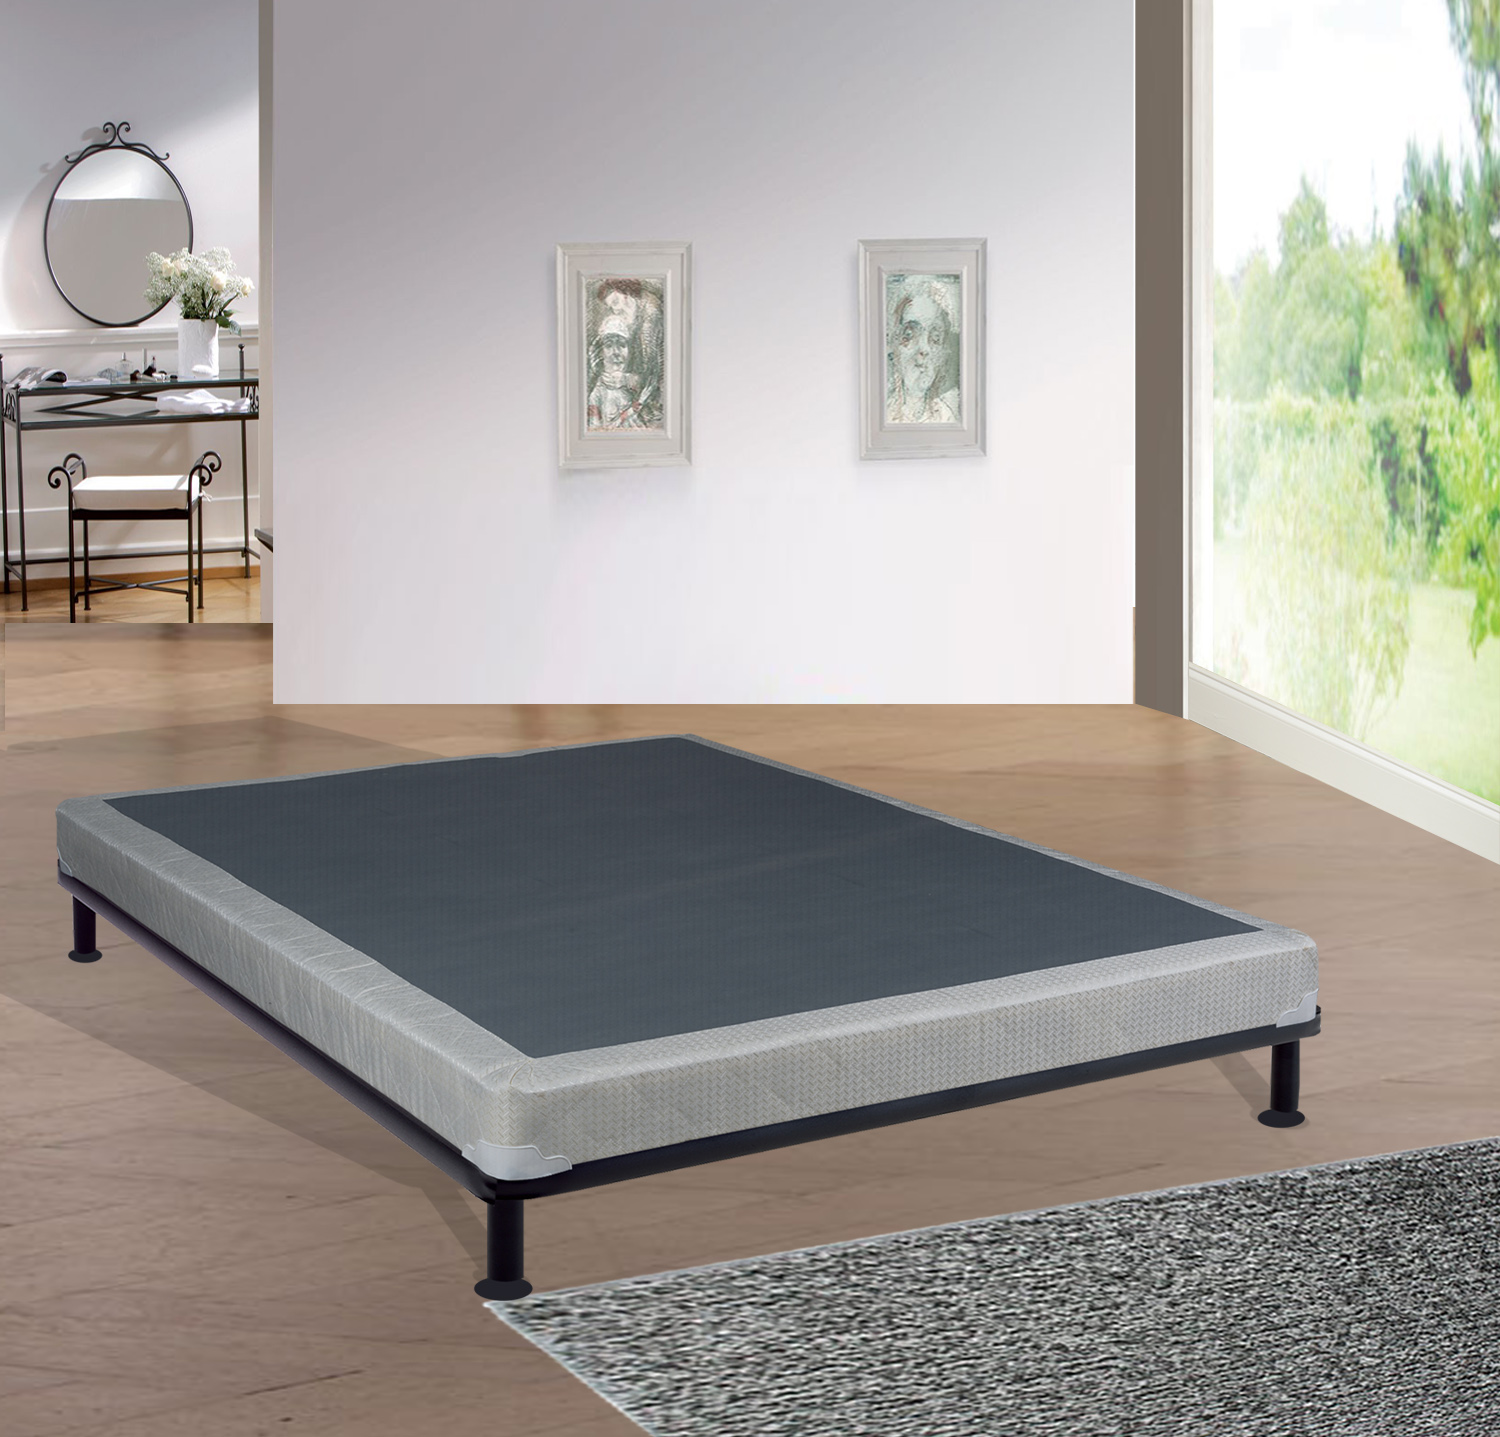 "Mattress Solution 4"" Fully Assembled Box Spring/Foundation for Mattress, Twin Size"